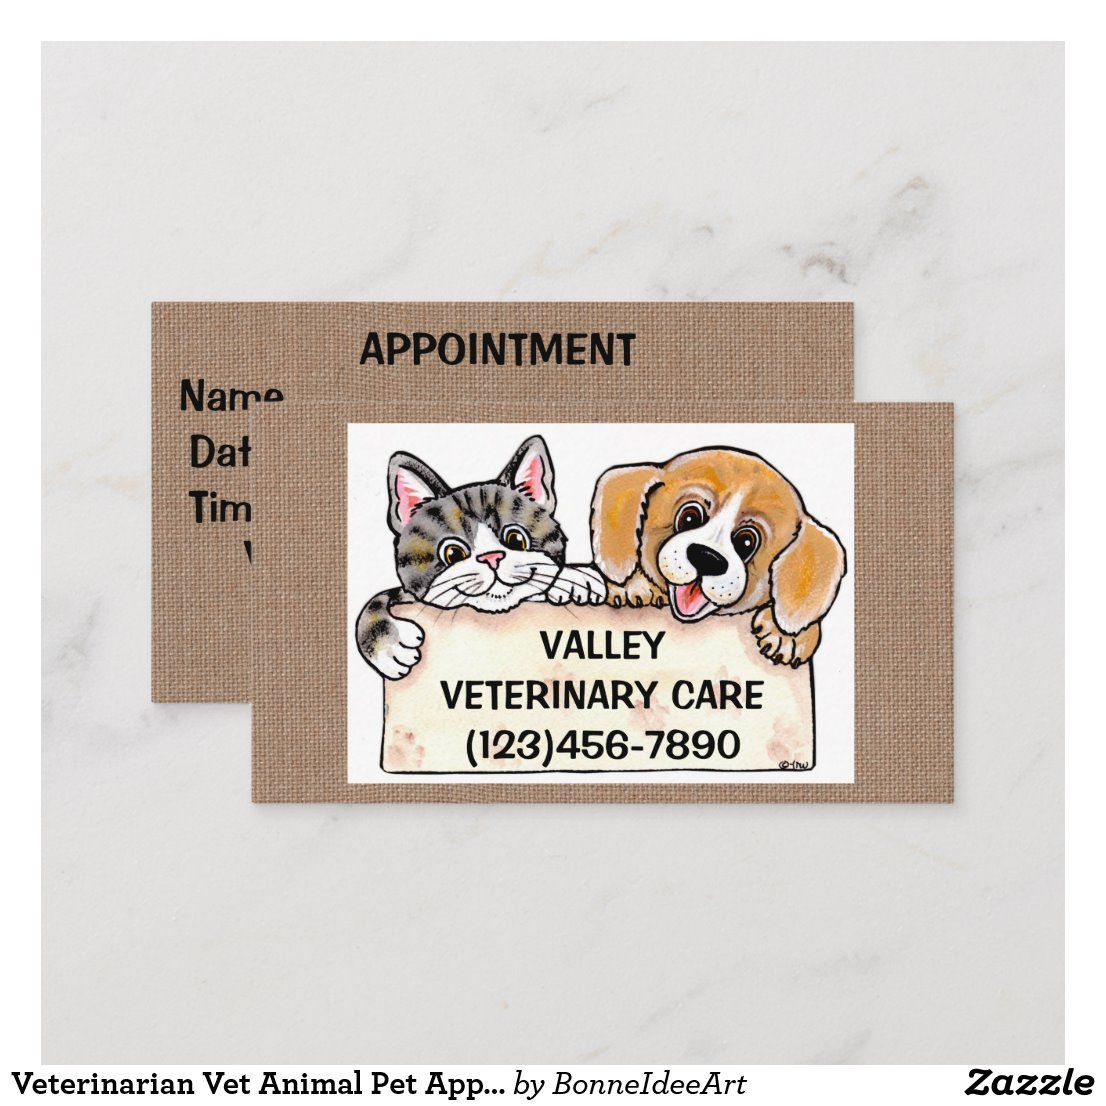 Veterinarian Vet Animal Pet Appointment Dog Cat Business Card Zazzle Com In 2020 Dog Cat Veterinarian Pets